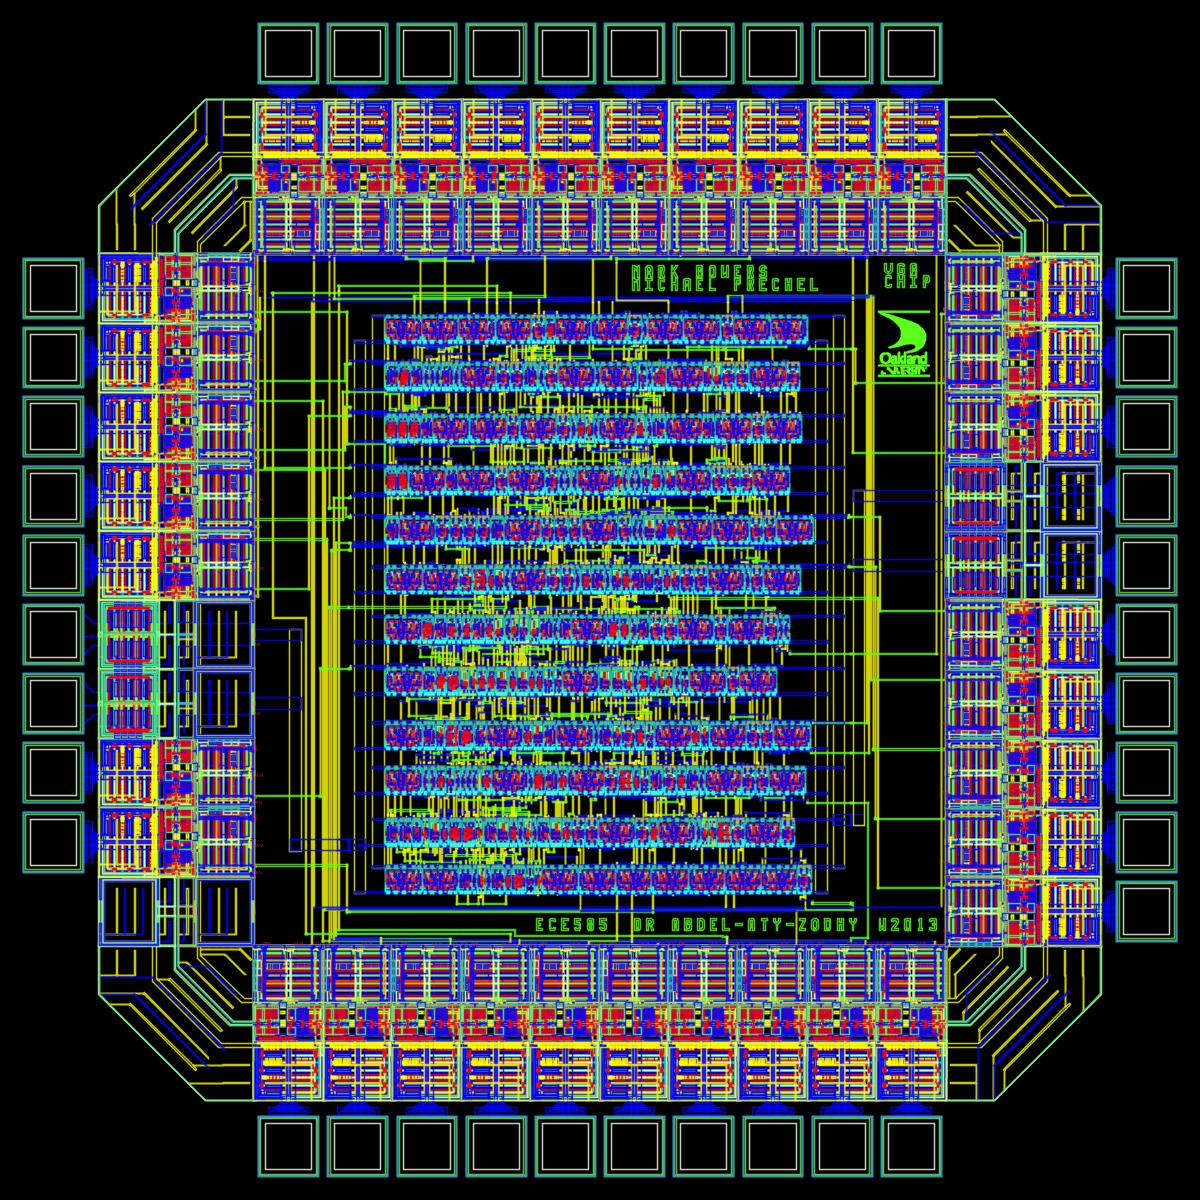 hight resolution of layout of the vga asic